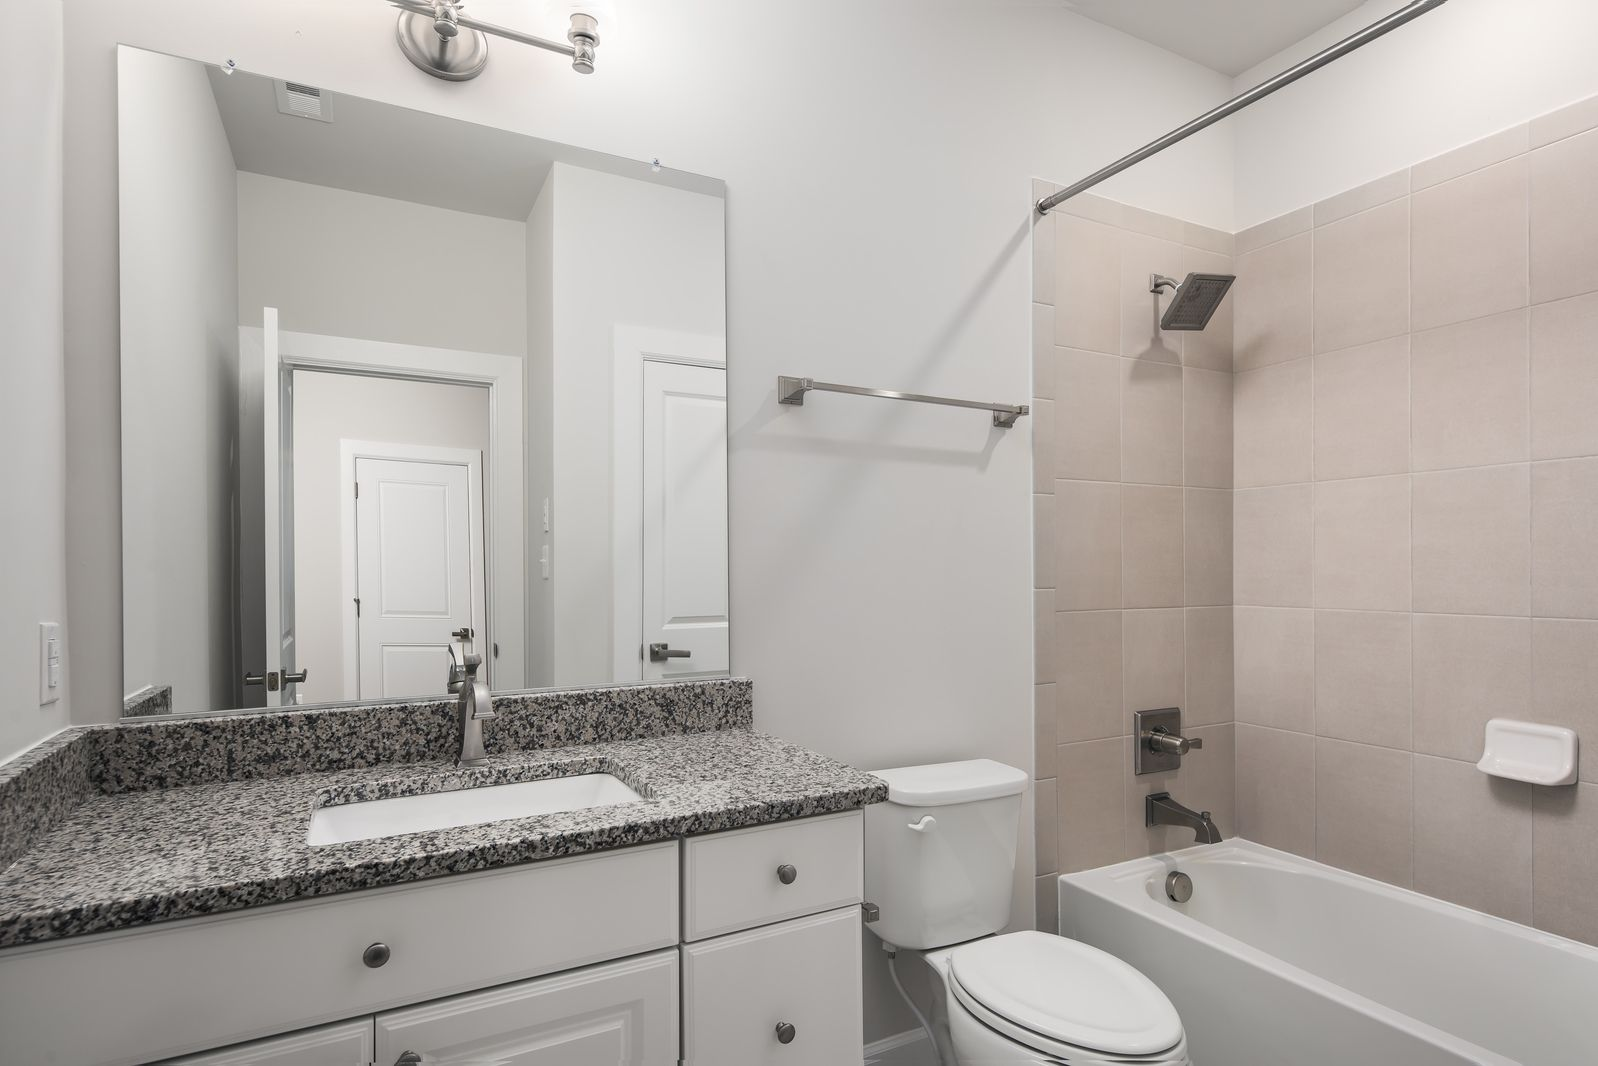 Bathroom featured in the Bennington By NVHomes in Philadelphia, PA